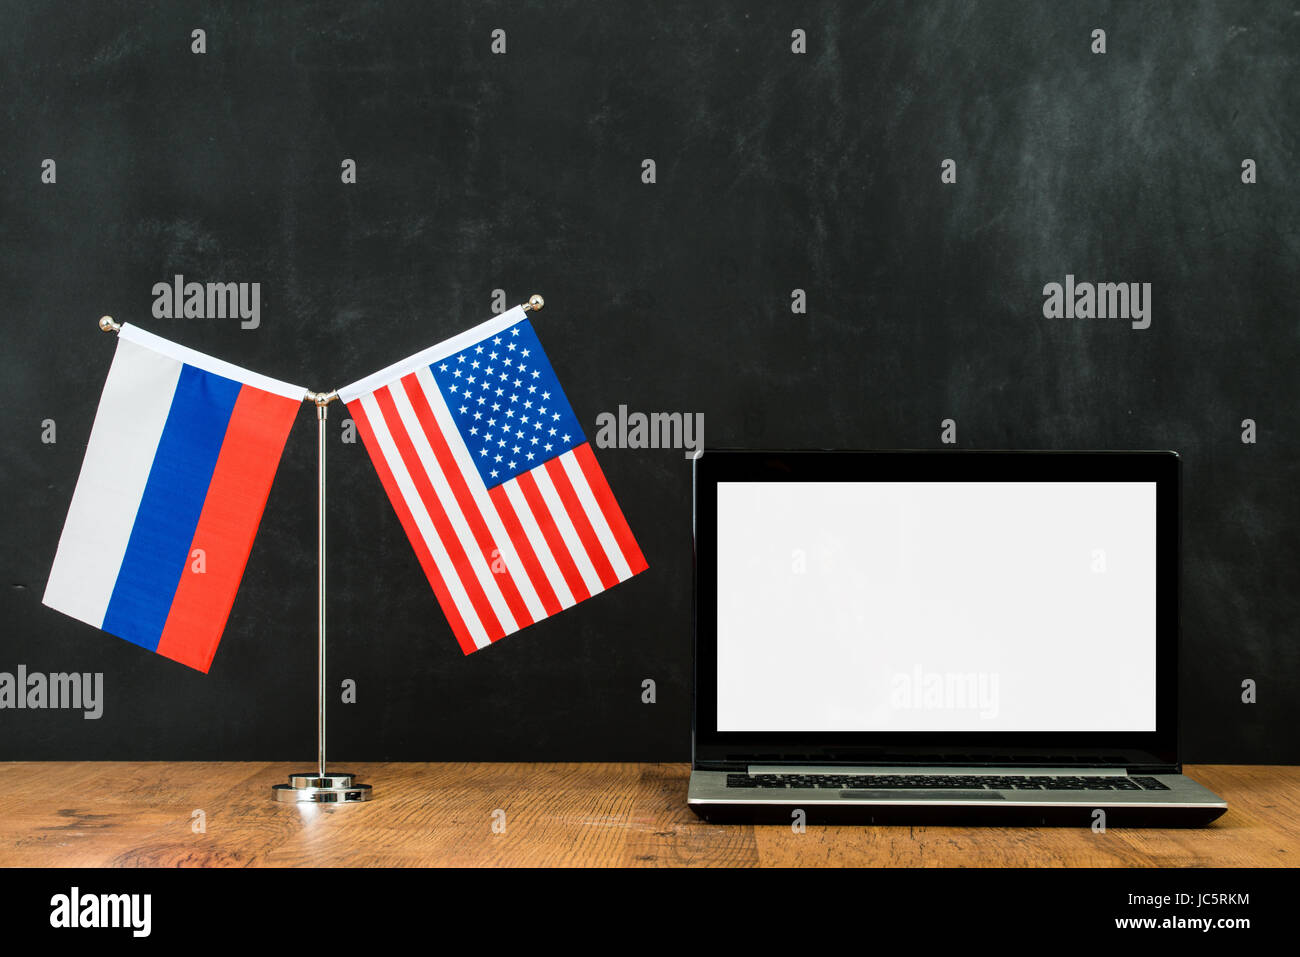 Russia spying on America. Russian hackers threaten USA computer networks political problem flag on flagpole in front Stock Photo